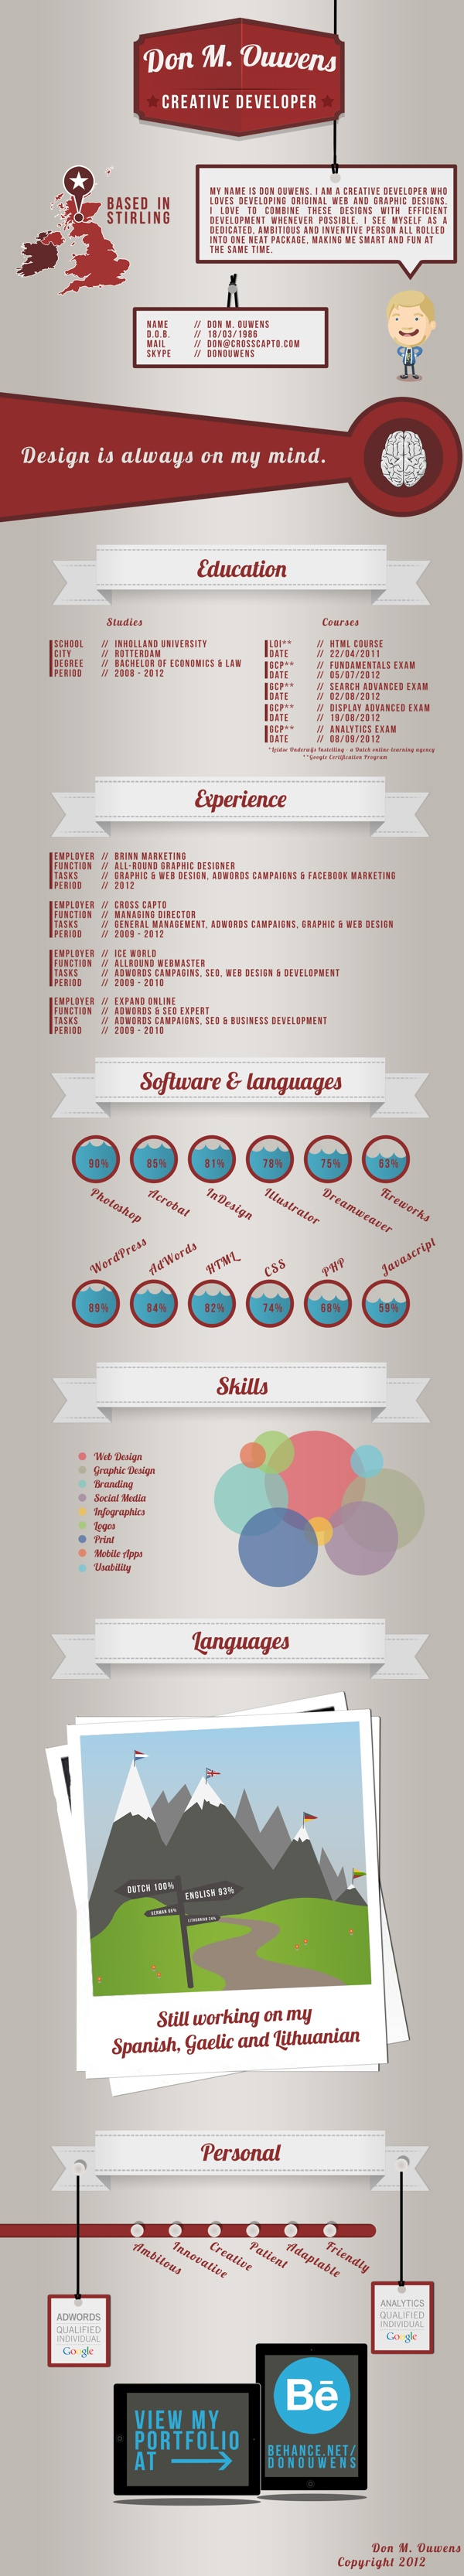 17 best images about designer resume infographic my infographic resume by don ouwens via behance